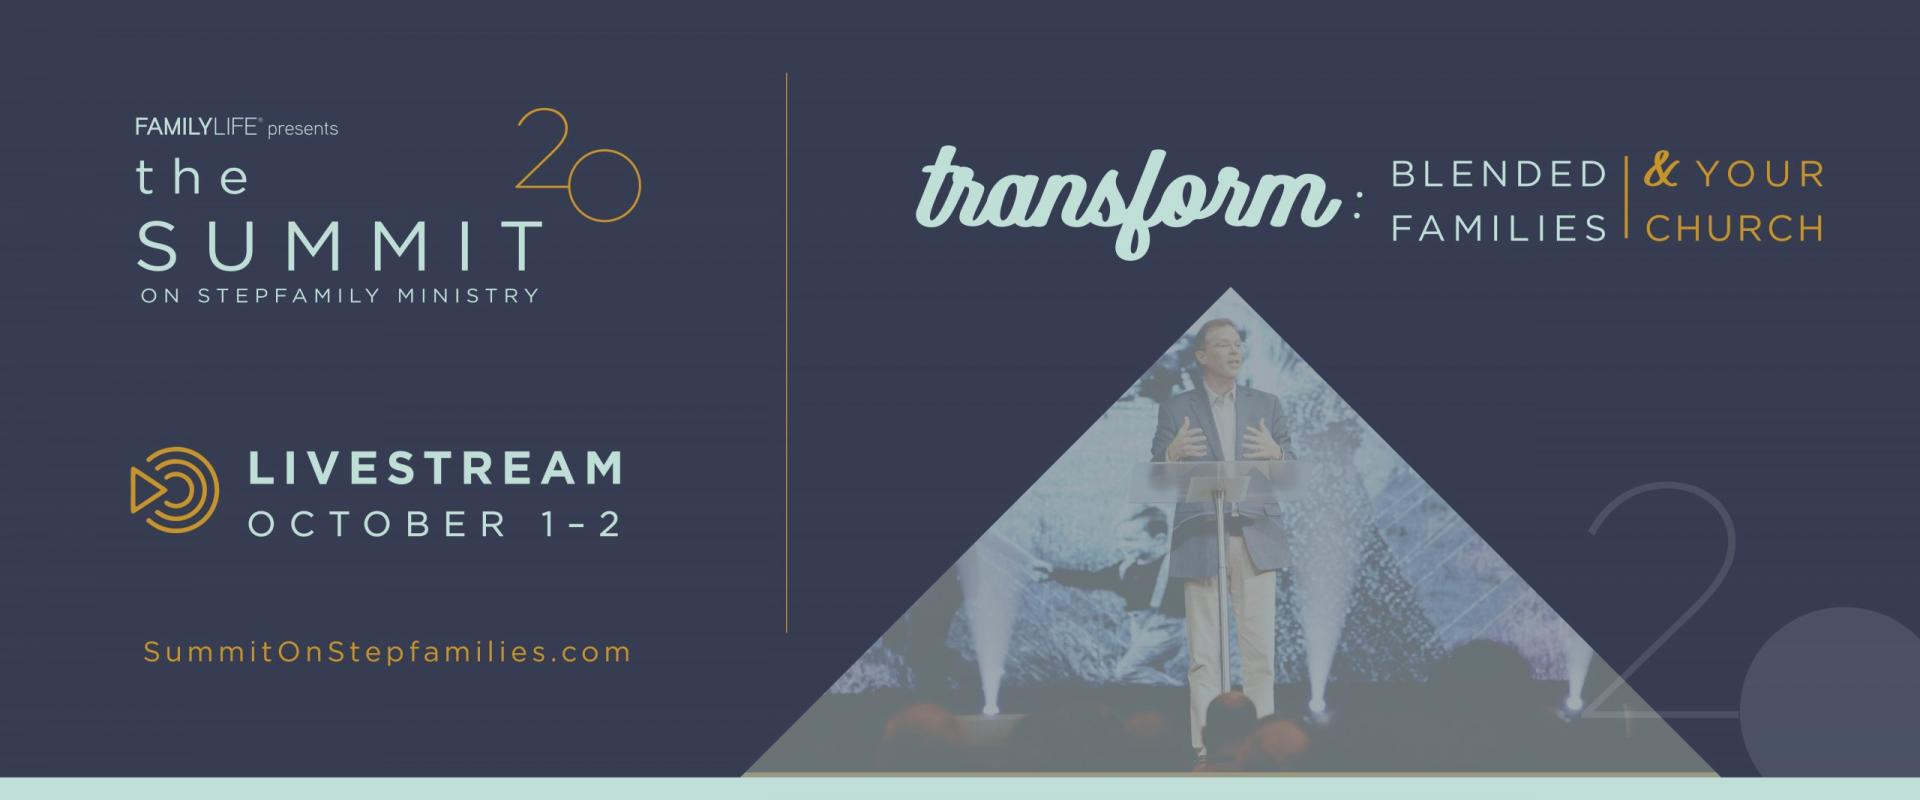 The 2020 Summit on Stepfamily Ministry